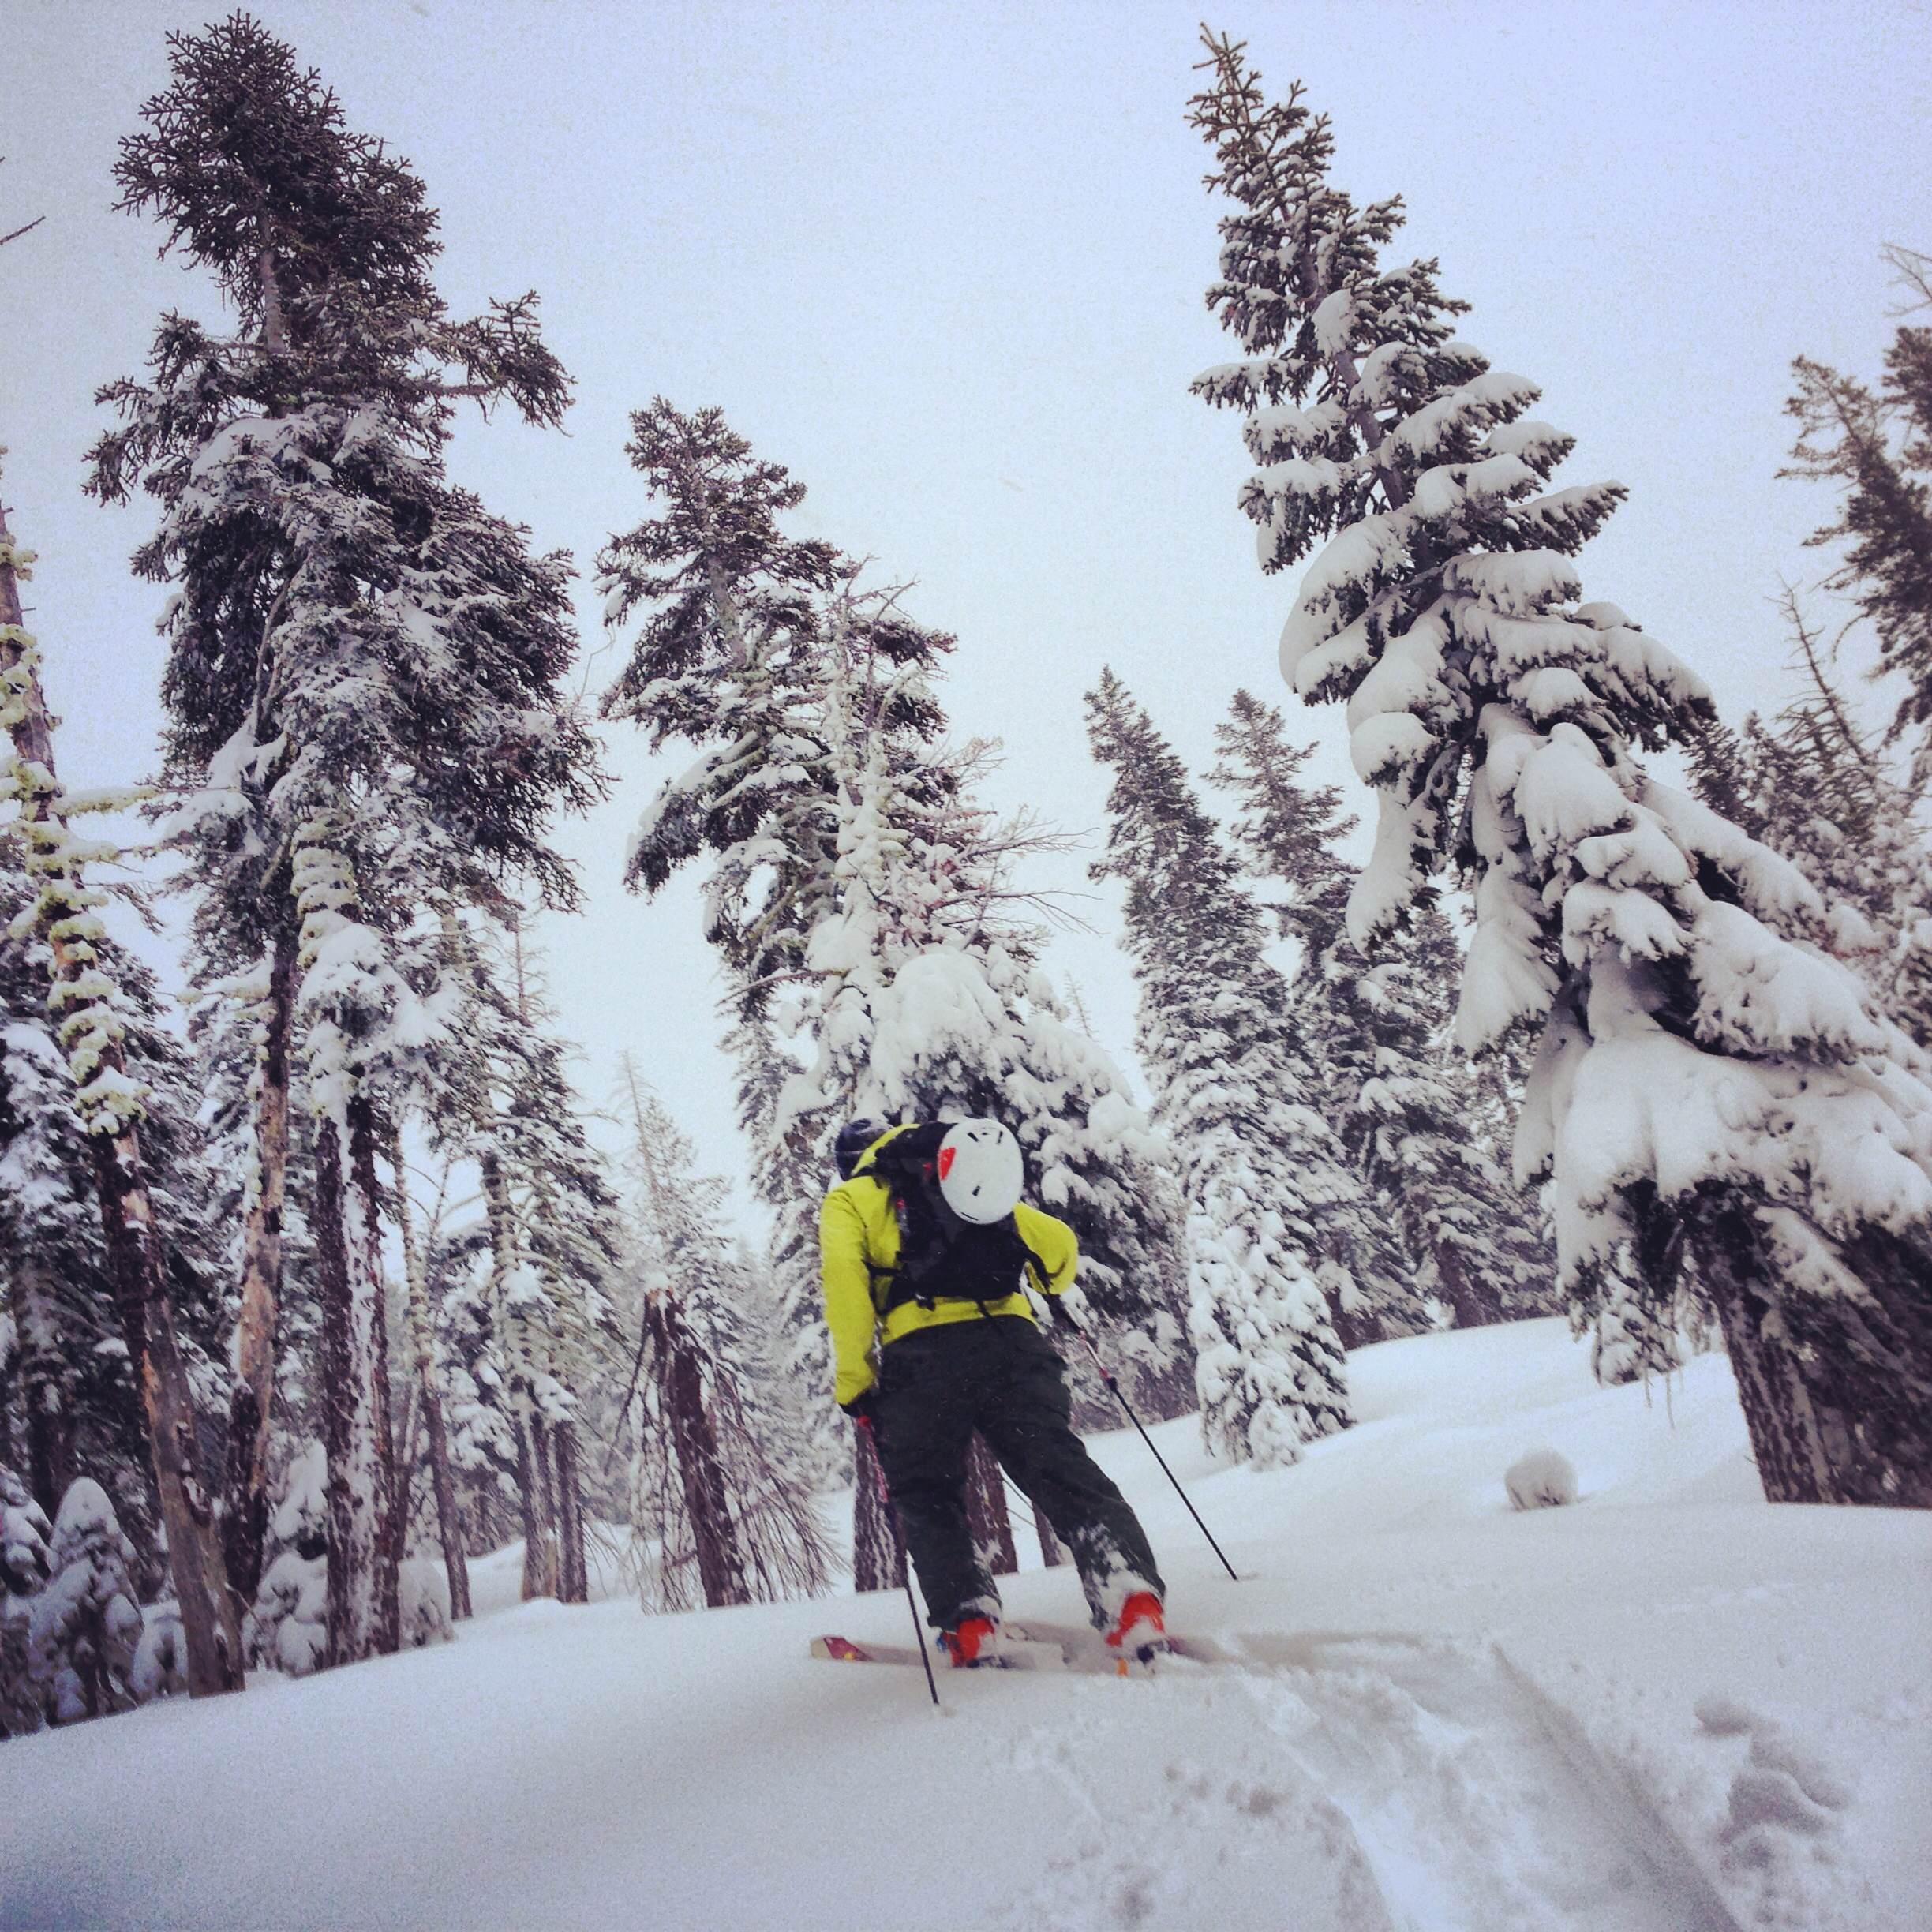 The snow was soft and the skinning good